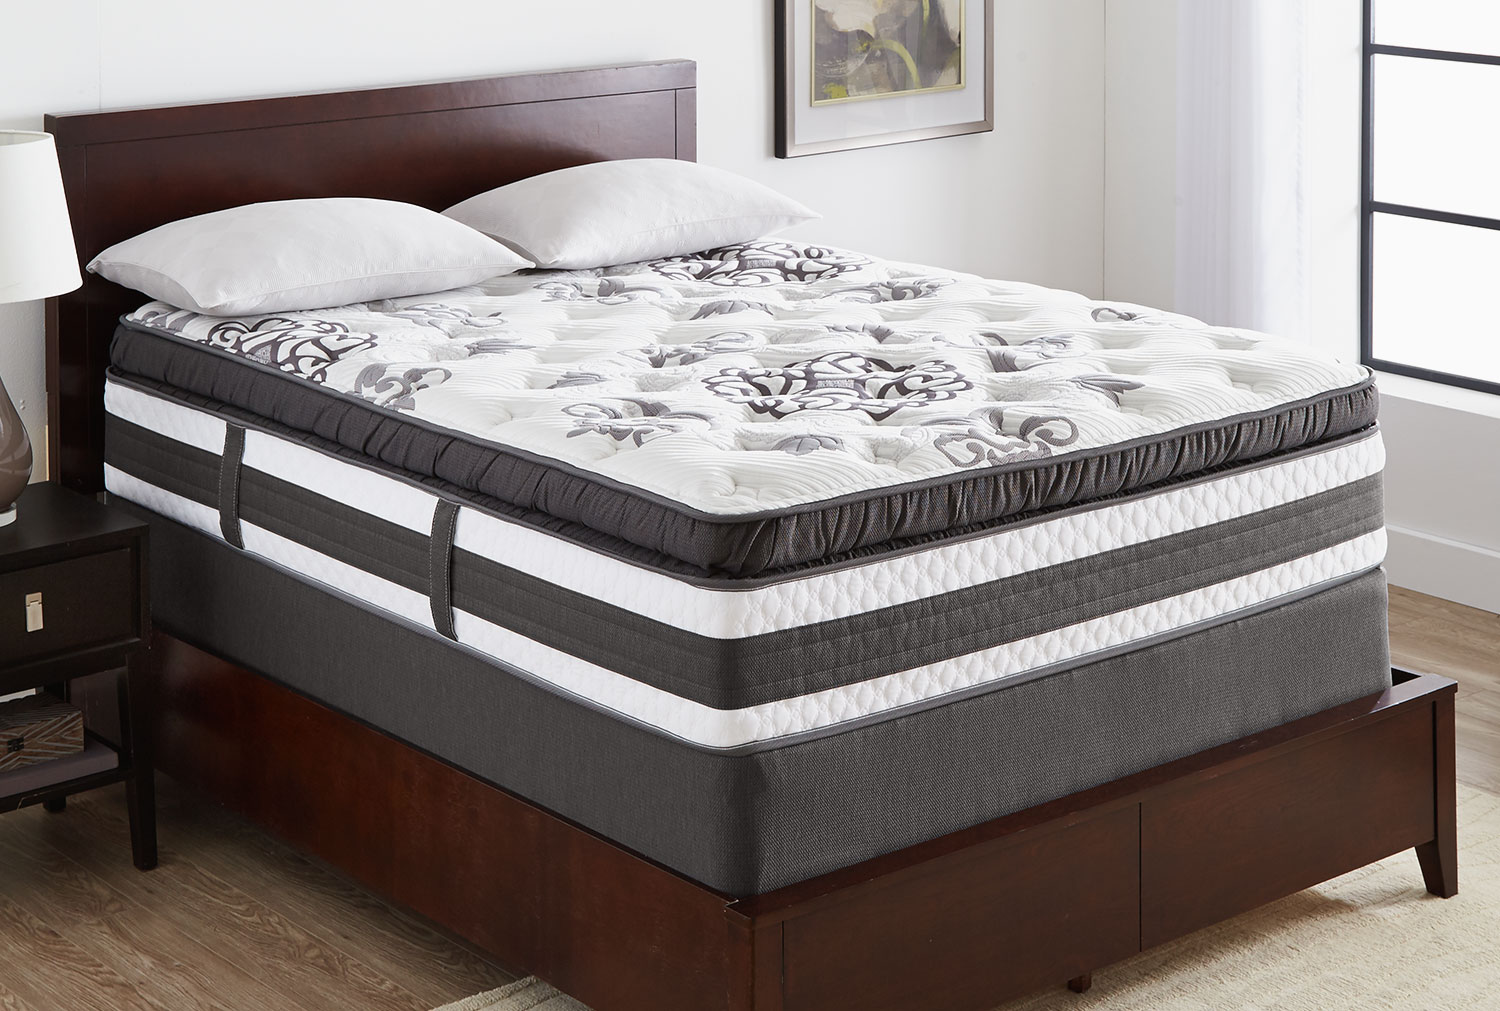 Serta iCollection Hopedale Super Pillow-Top Plush King Mattress Set